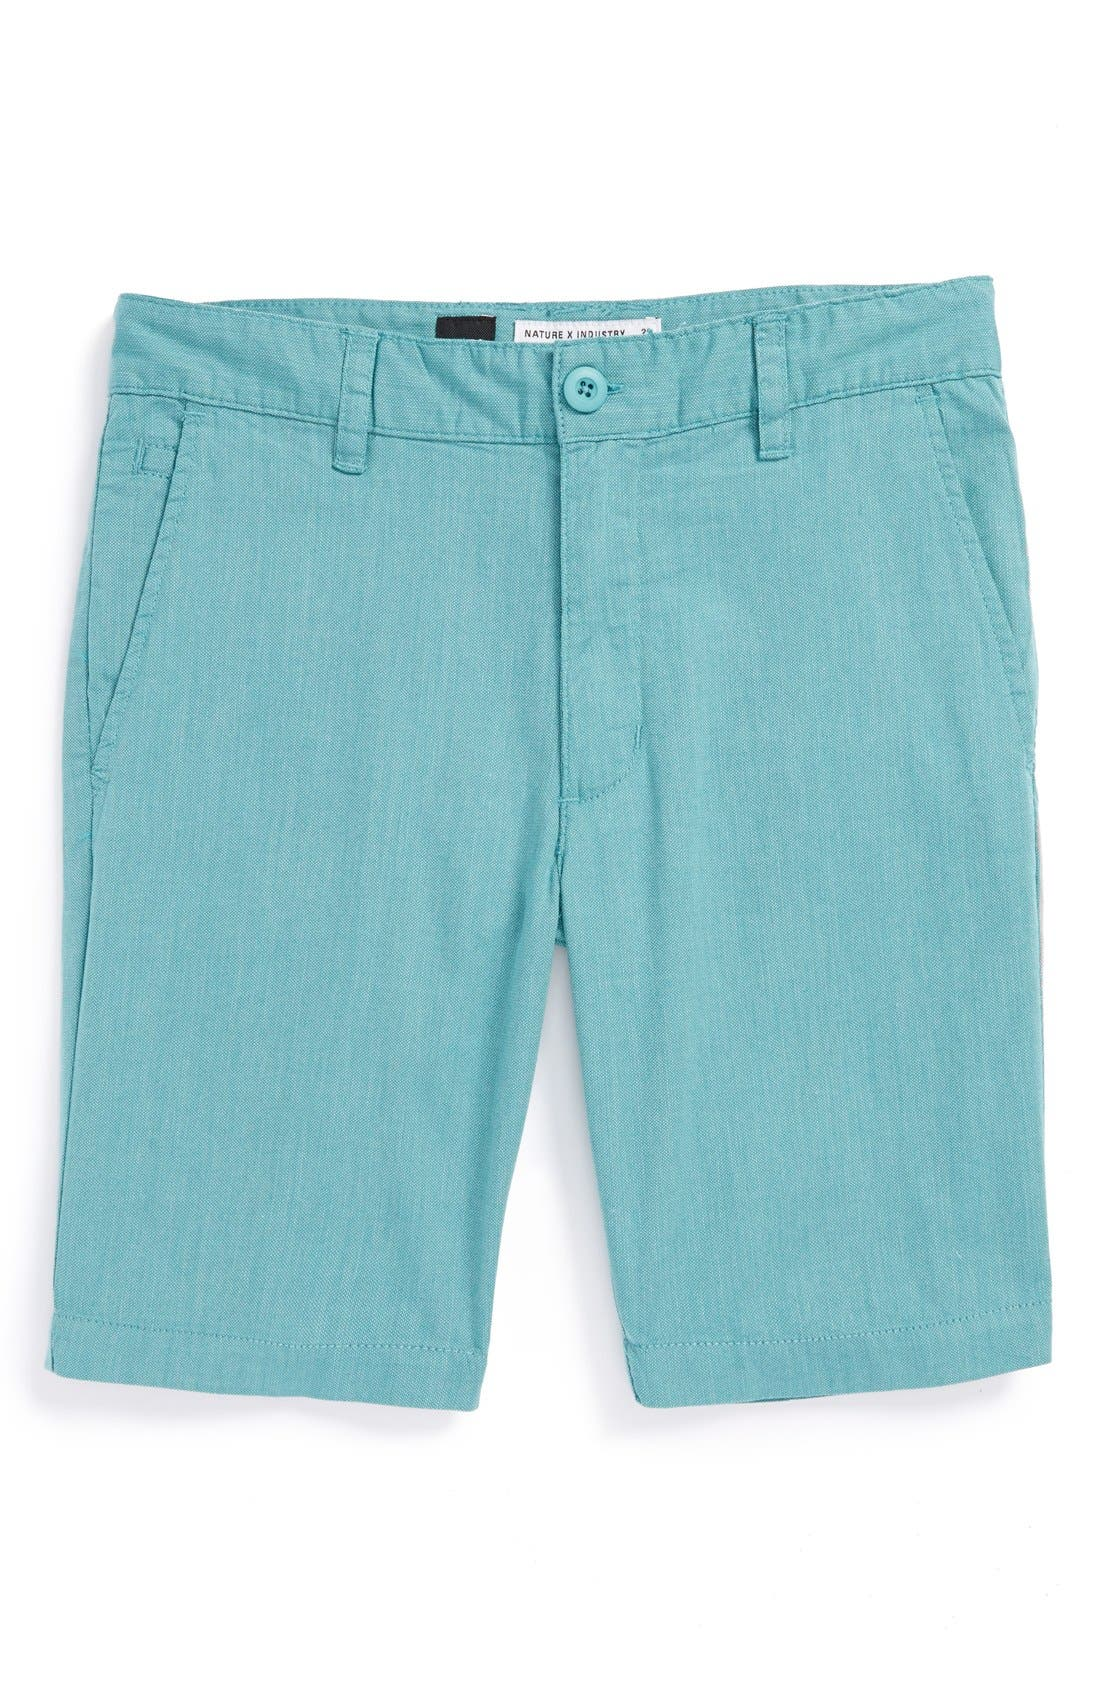 Alternate Image 1 Selected - RVCA 'Fracture' Shorts (Big Boys)